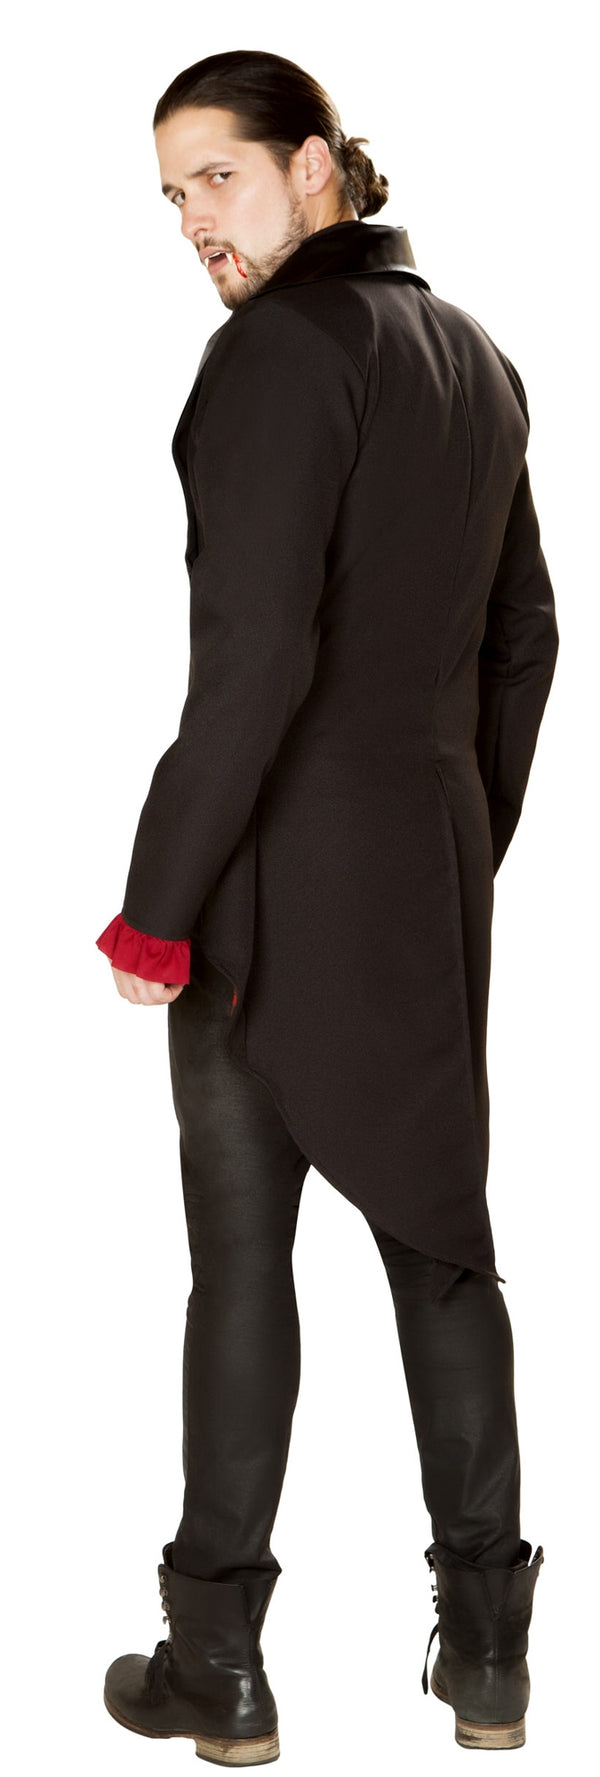 Terror of The Night Vampire Costume RM-4865